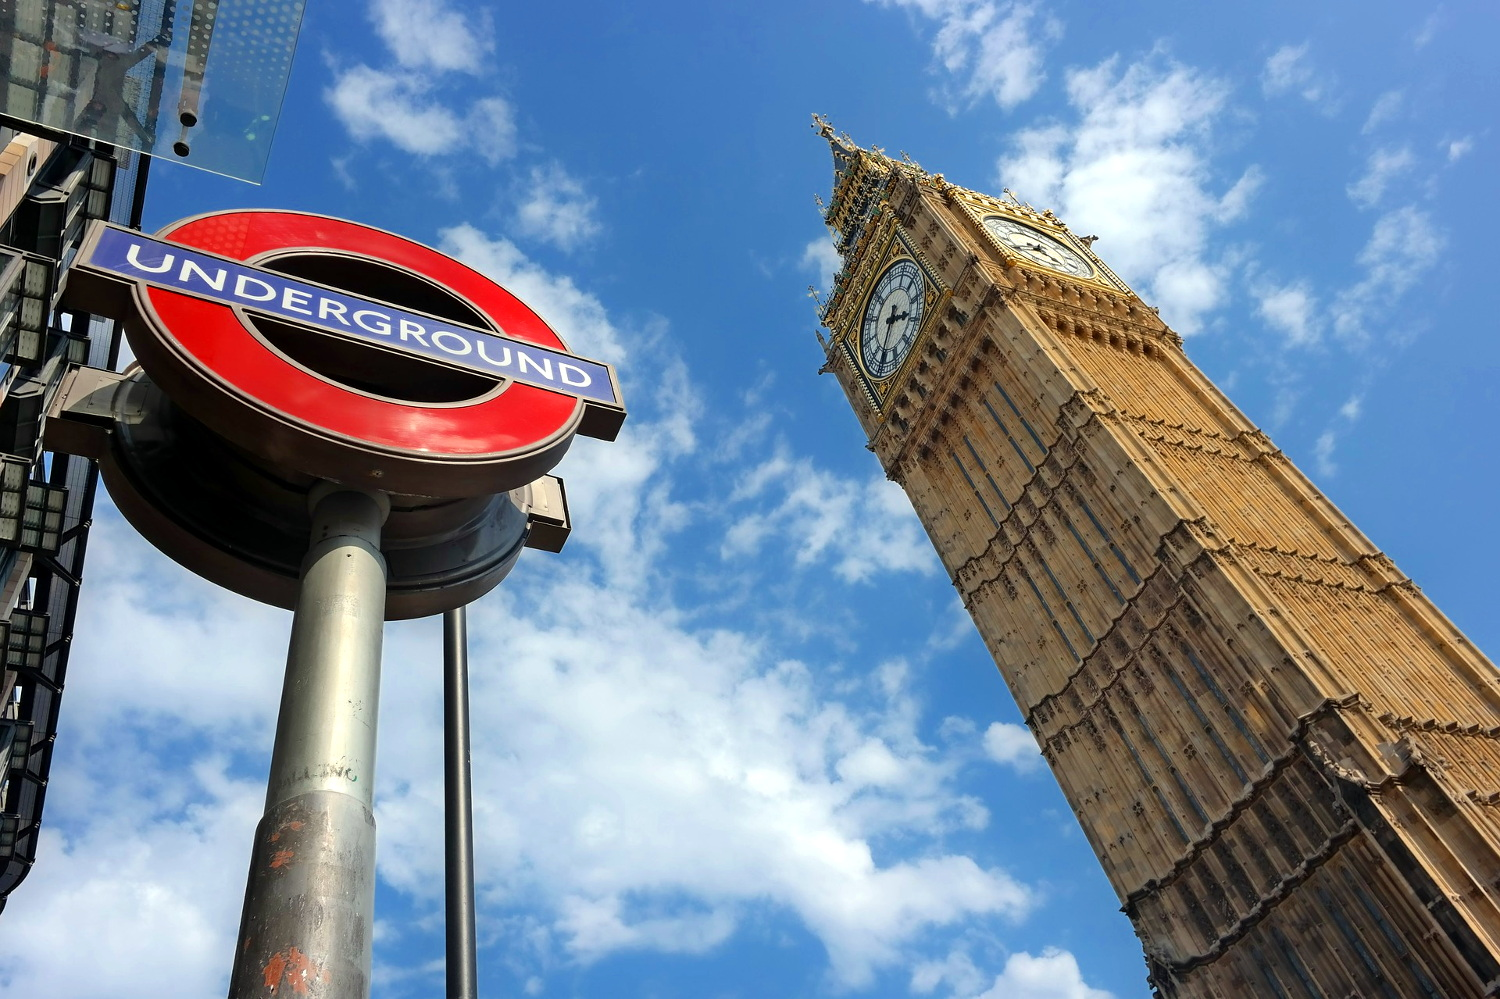 City Guide to London, UK: Part 5 | Public Transportation -